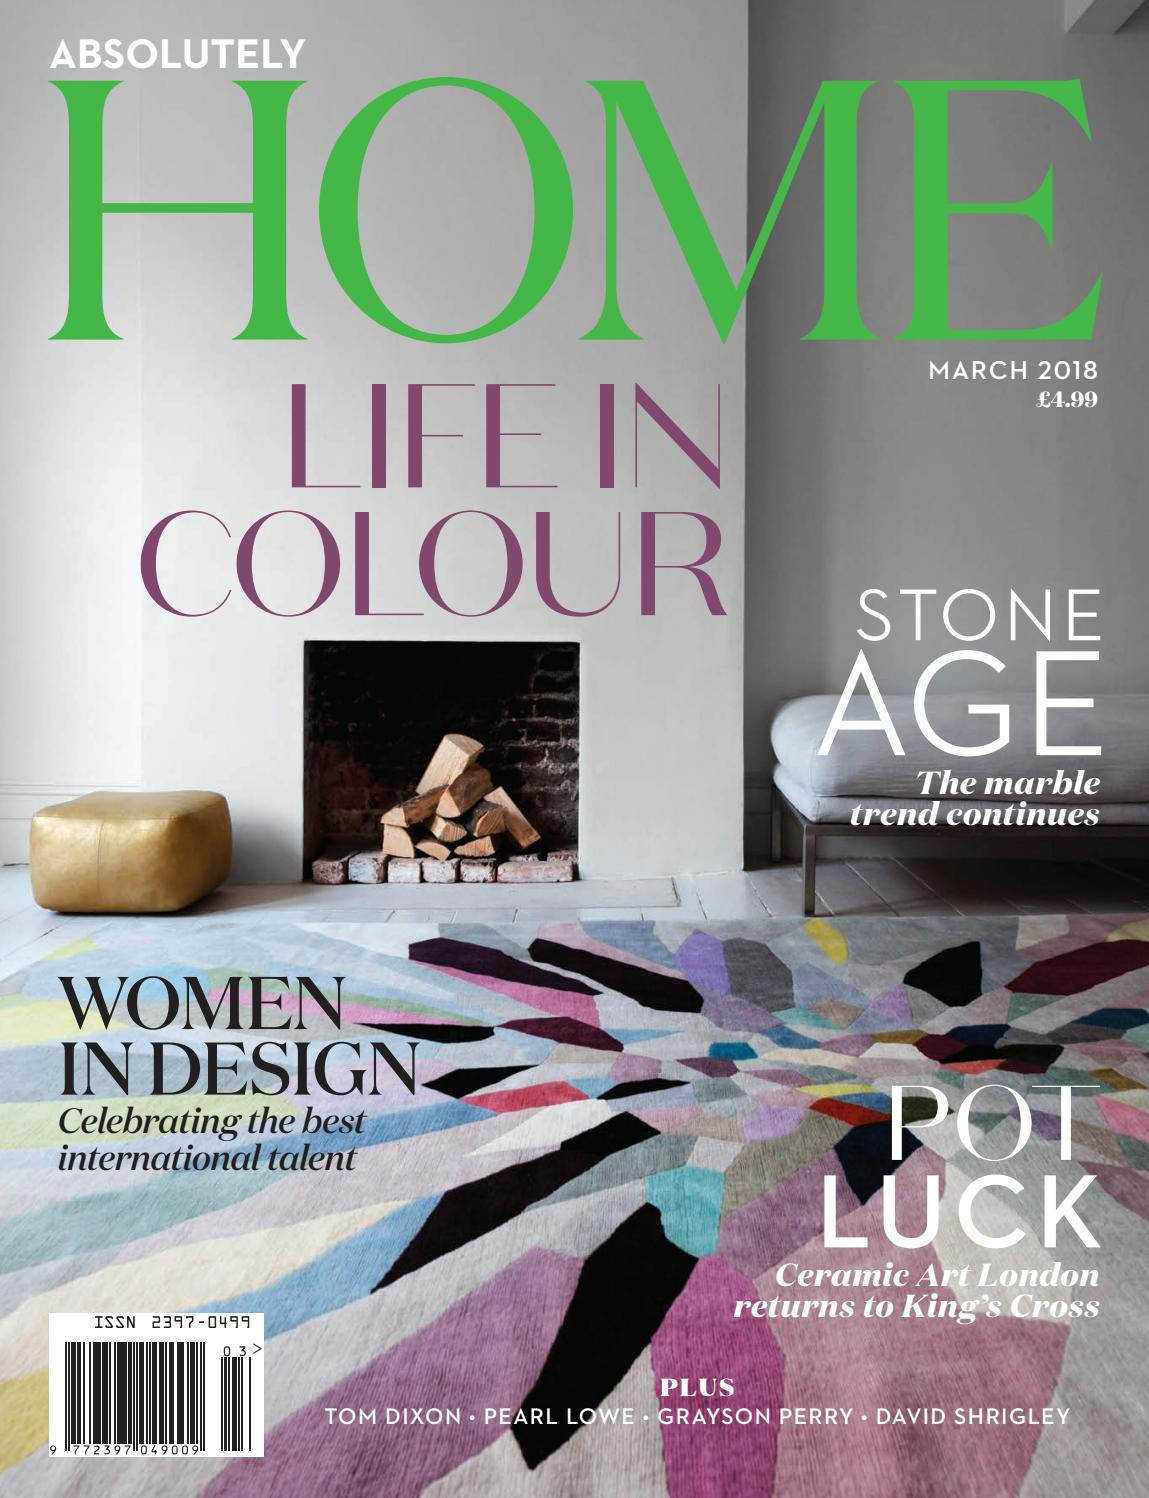 lsa international vases poland of absolutely home march 2018 by zest media london issuu regarding page 1